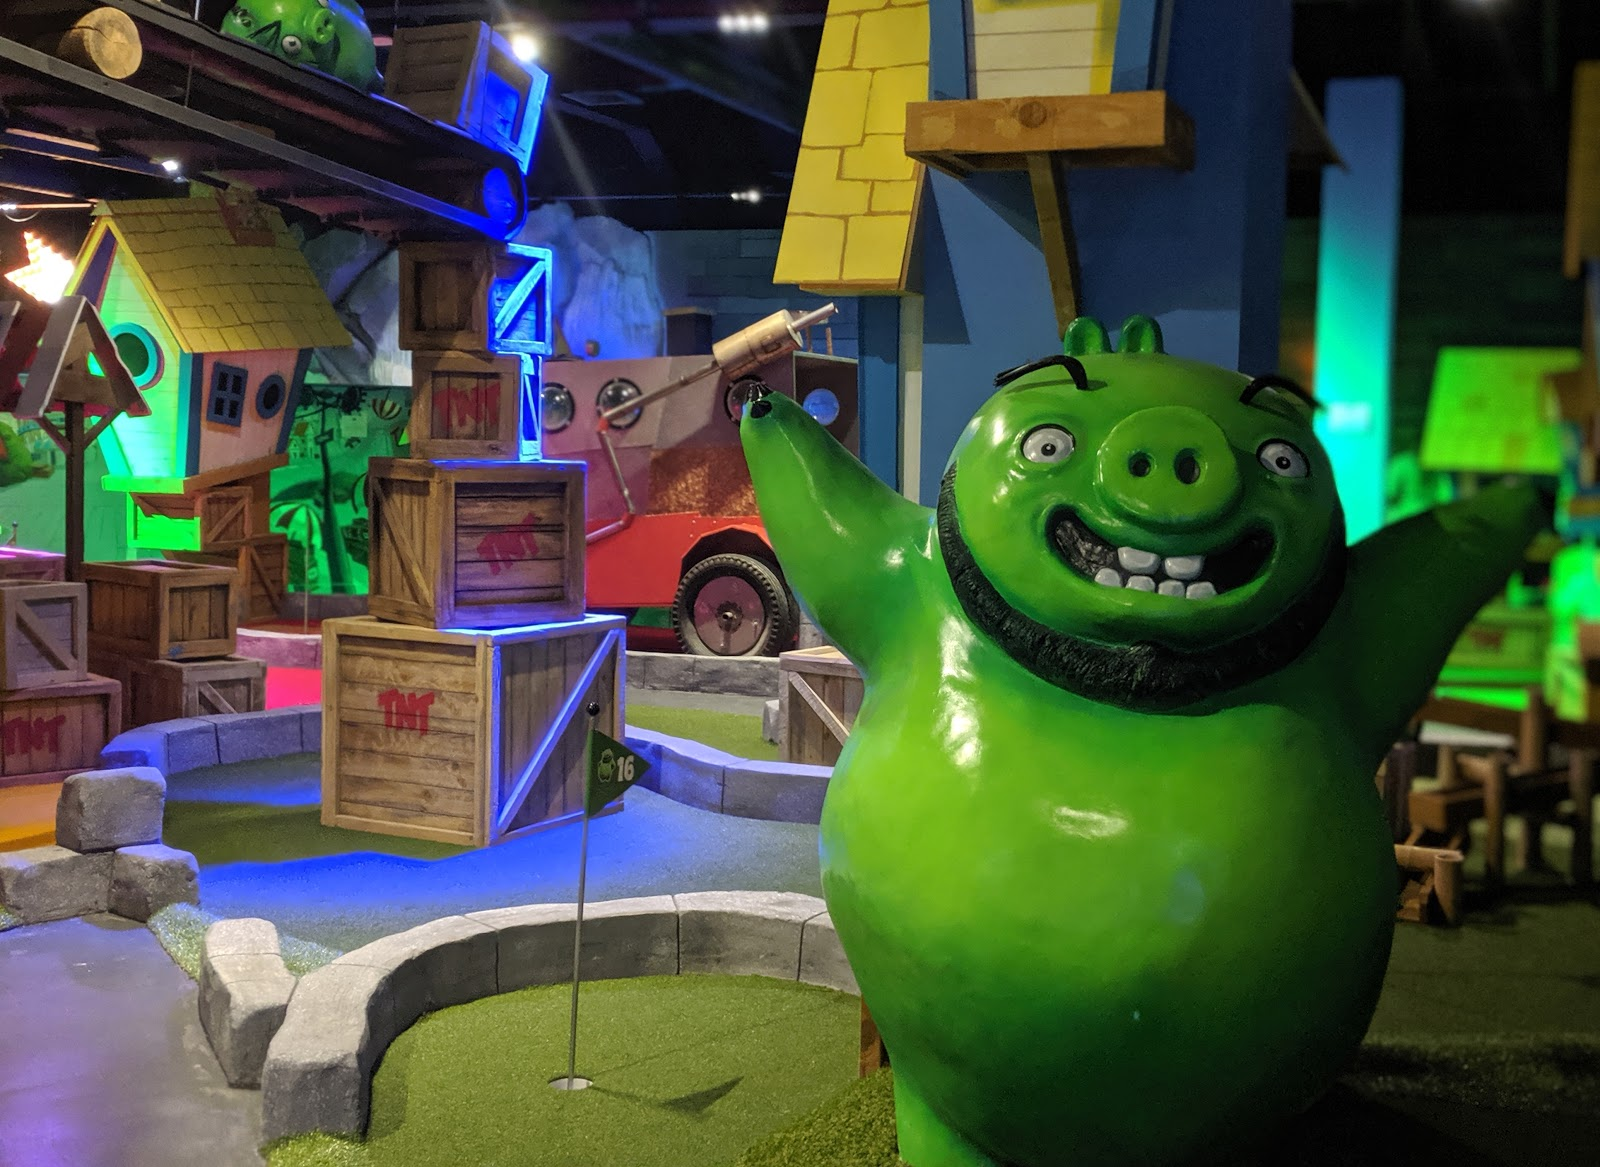 What to do when it rains in North East England   20+ places to visit with kids - Angry Birds Golf Metrocentre